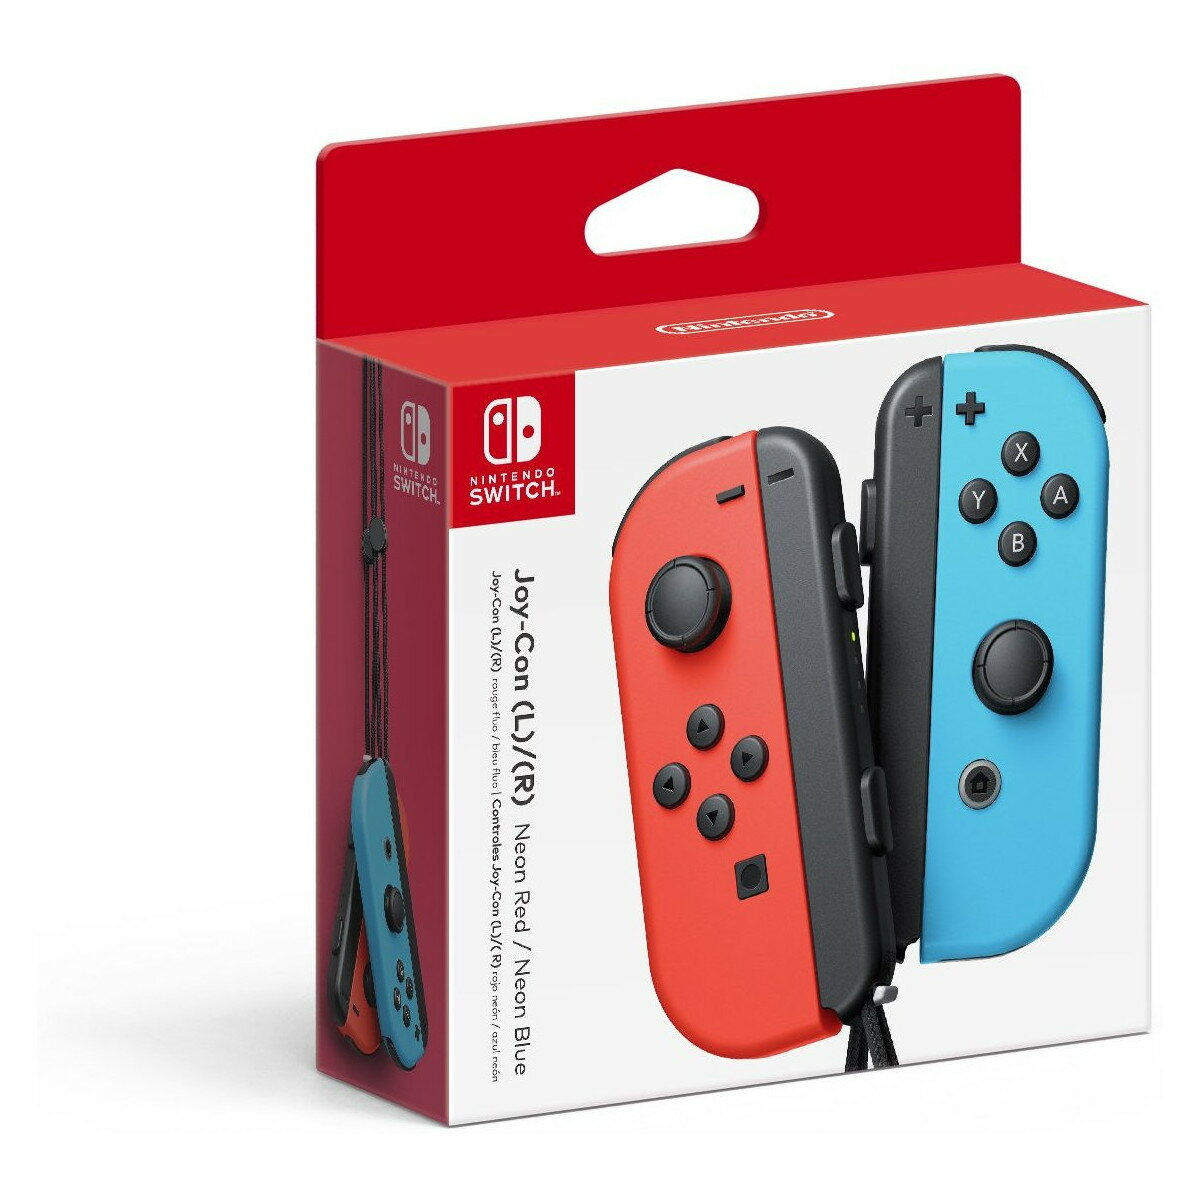 Nintendo Switch - Joy-Con - Neon Red/Neon Blue - (Left/Right) Controllers 0